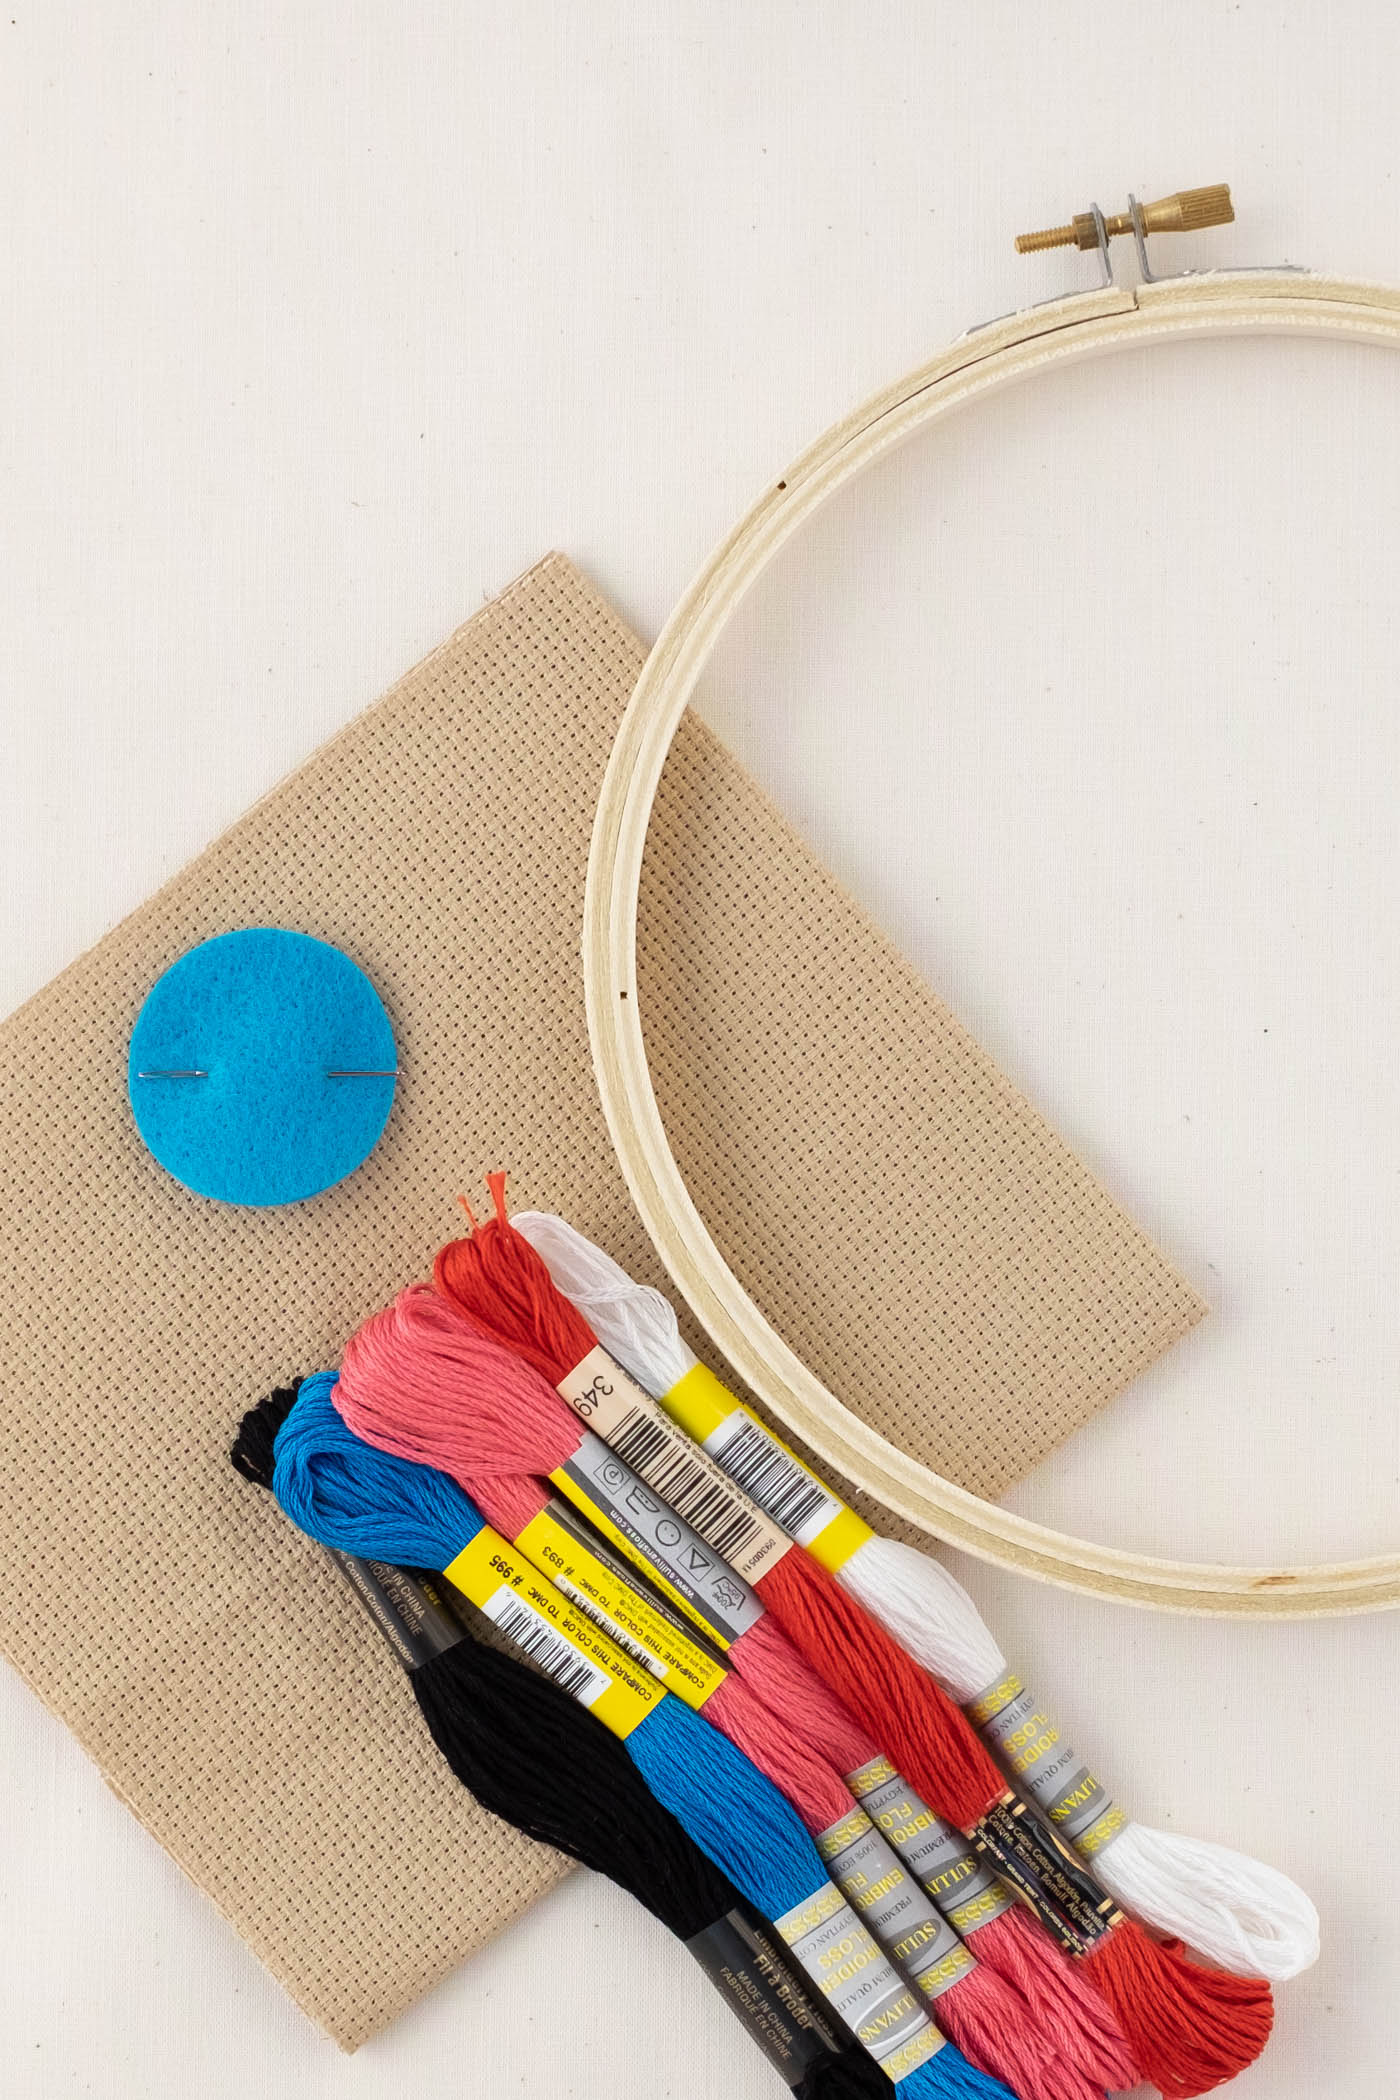 Lay flat of an embroidery kit with the backing, hoop, needle and black, blue, pink, red and white embroidery floss.